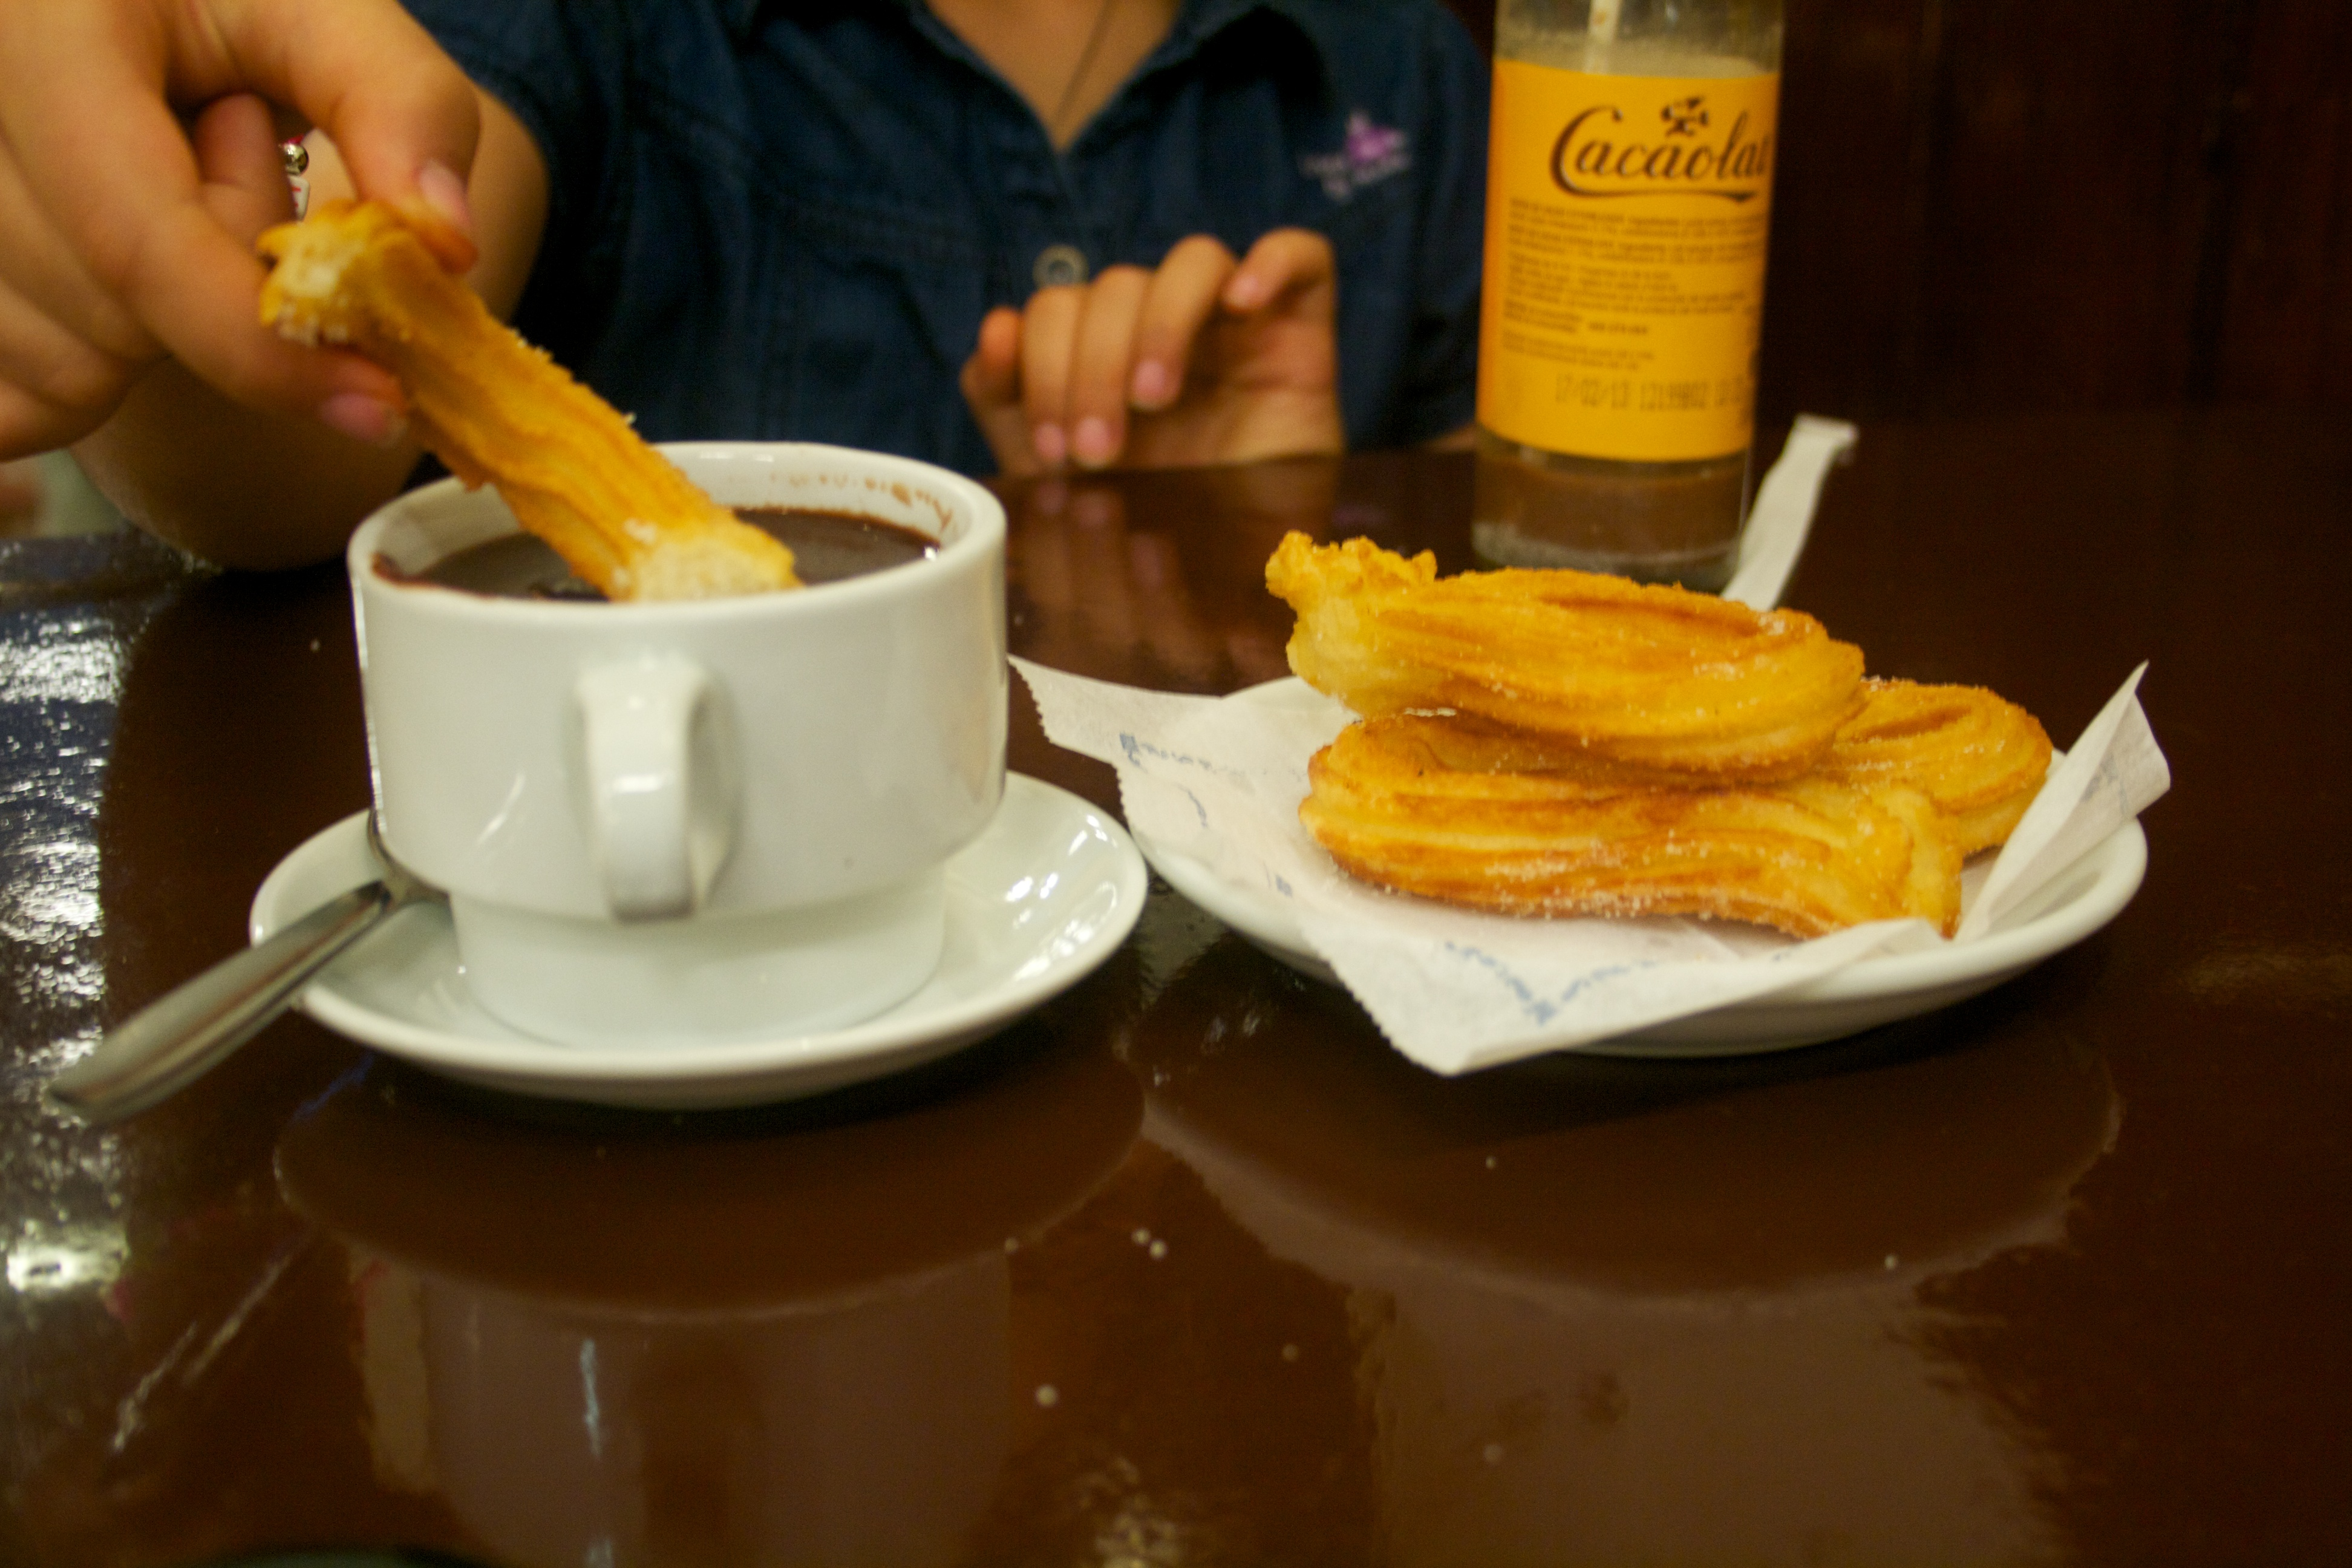 File:Churros con chocolate Barcelona.jpg - Wikimedia Commons